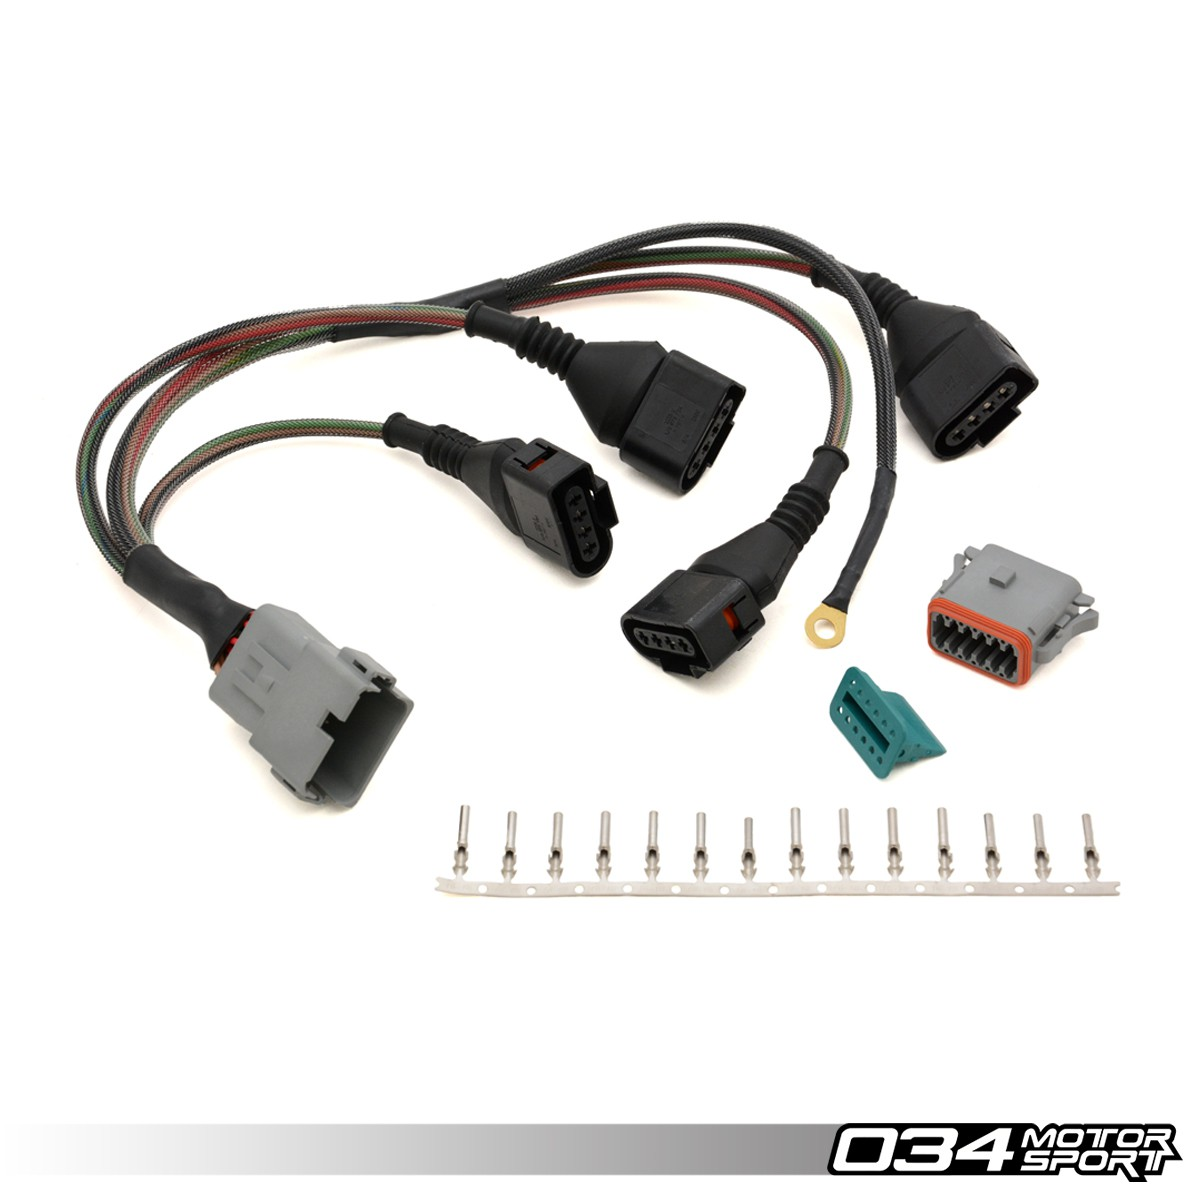 repair update harness audi volkswagen 18t with 4 wire coils 034motorsport 034 701 0004 2 repair update harness, audi volkswagen 1 8t with 4 wire coils  at pacquiaovsvargaslive.co